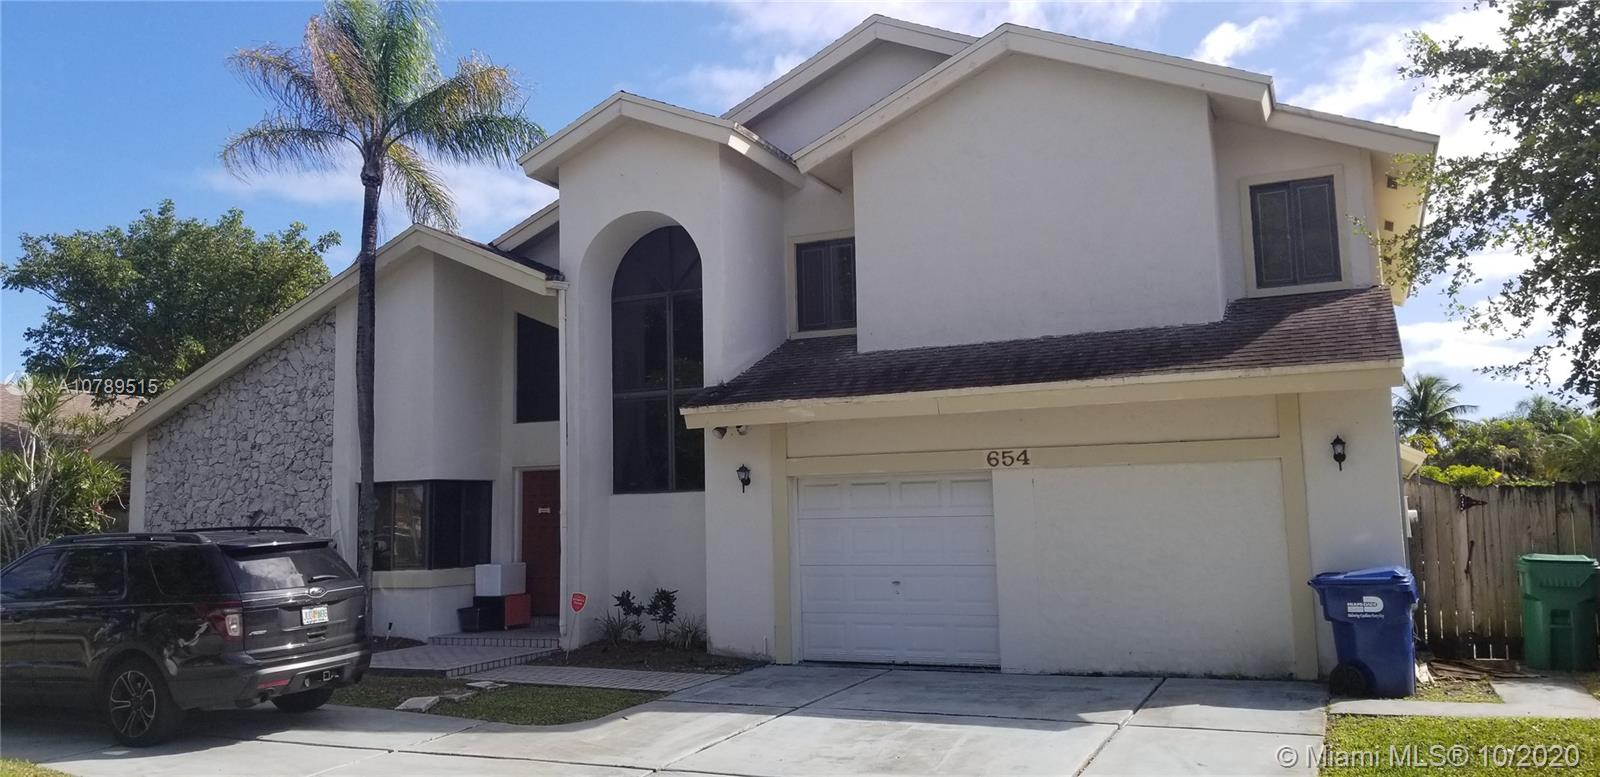 654 NE 205th Ter  For Sale A10789515, FL